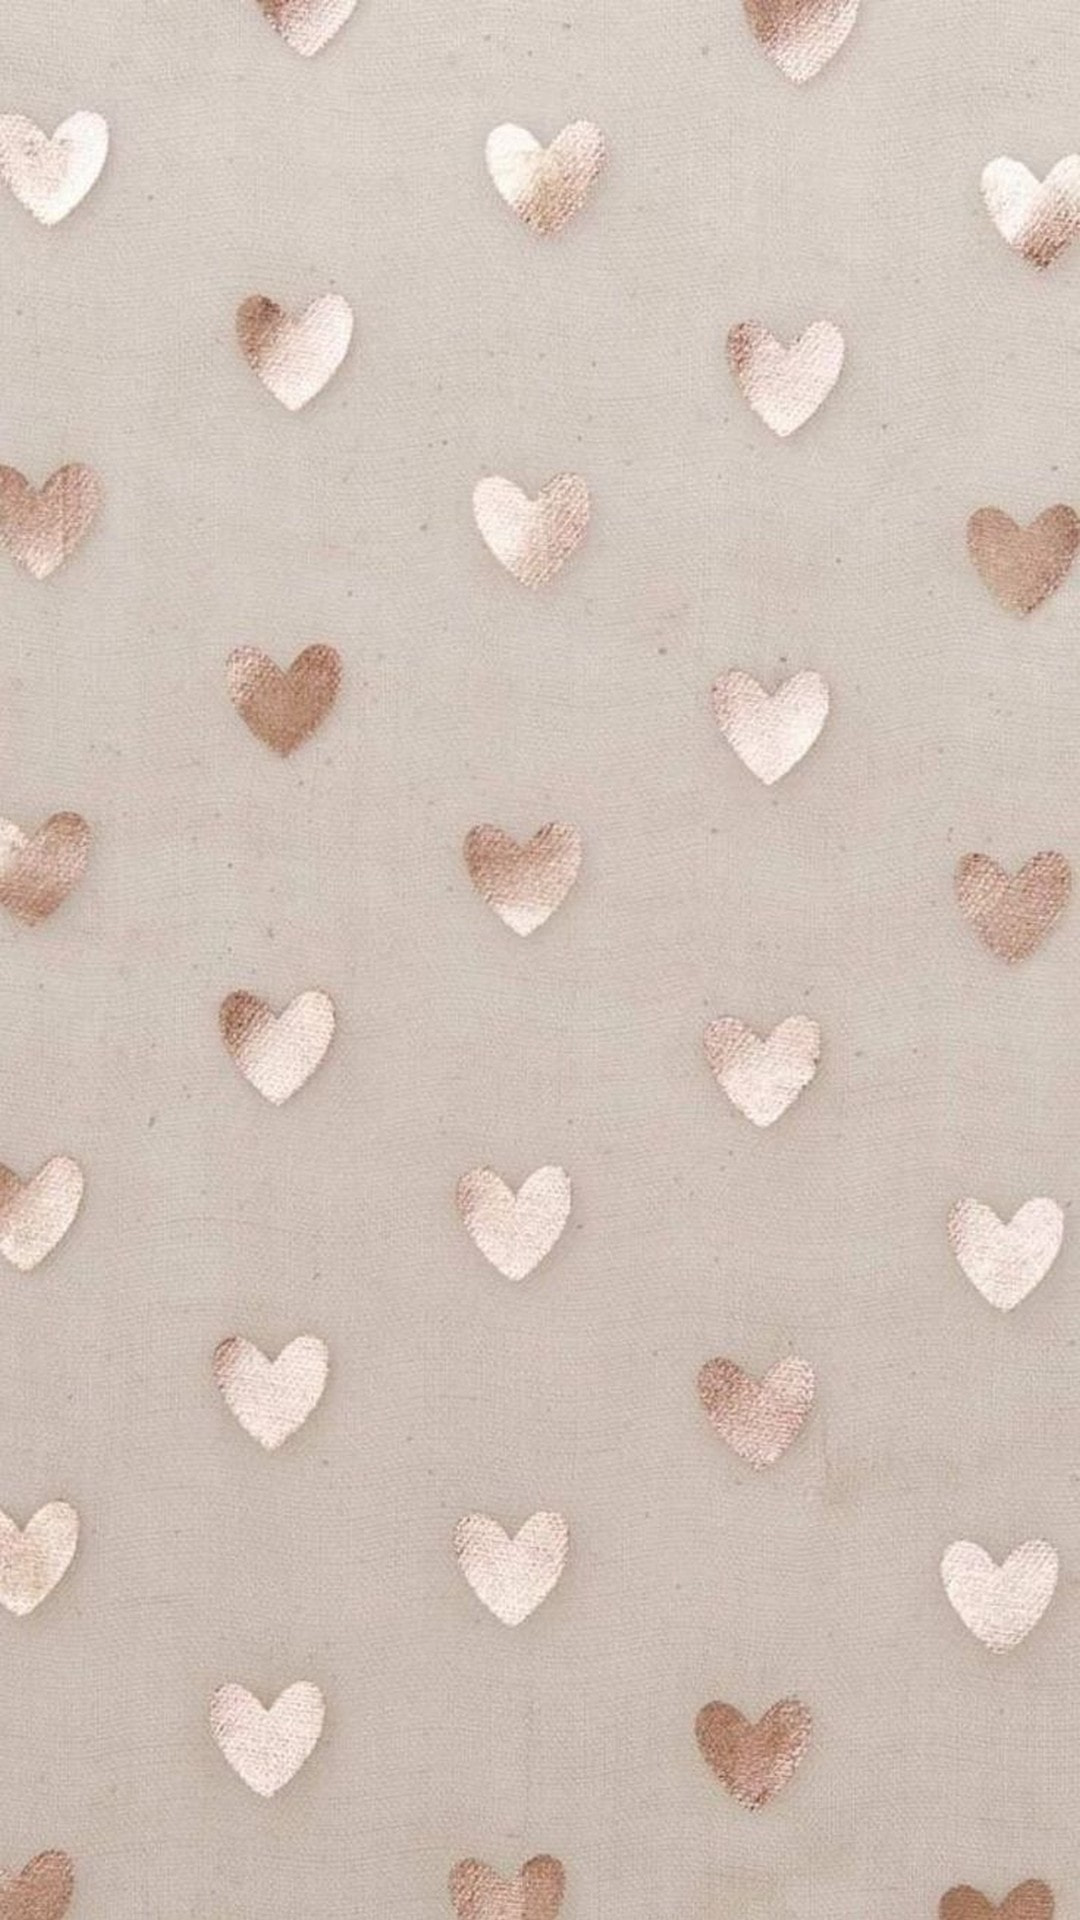 Heart Pattern Rose Gold Iphone Wallpaper